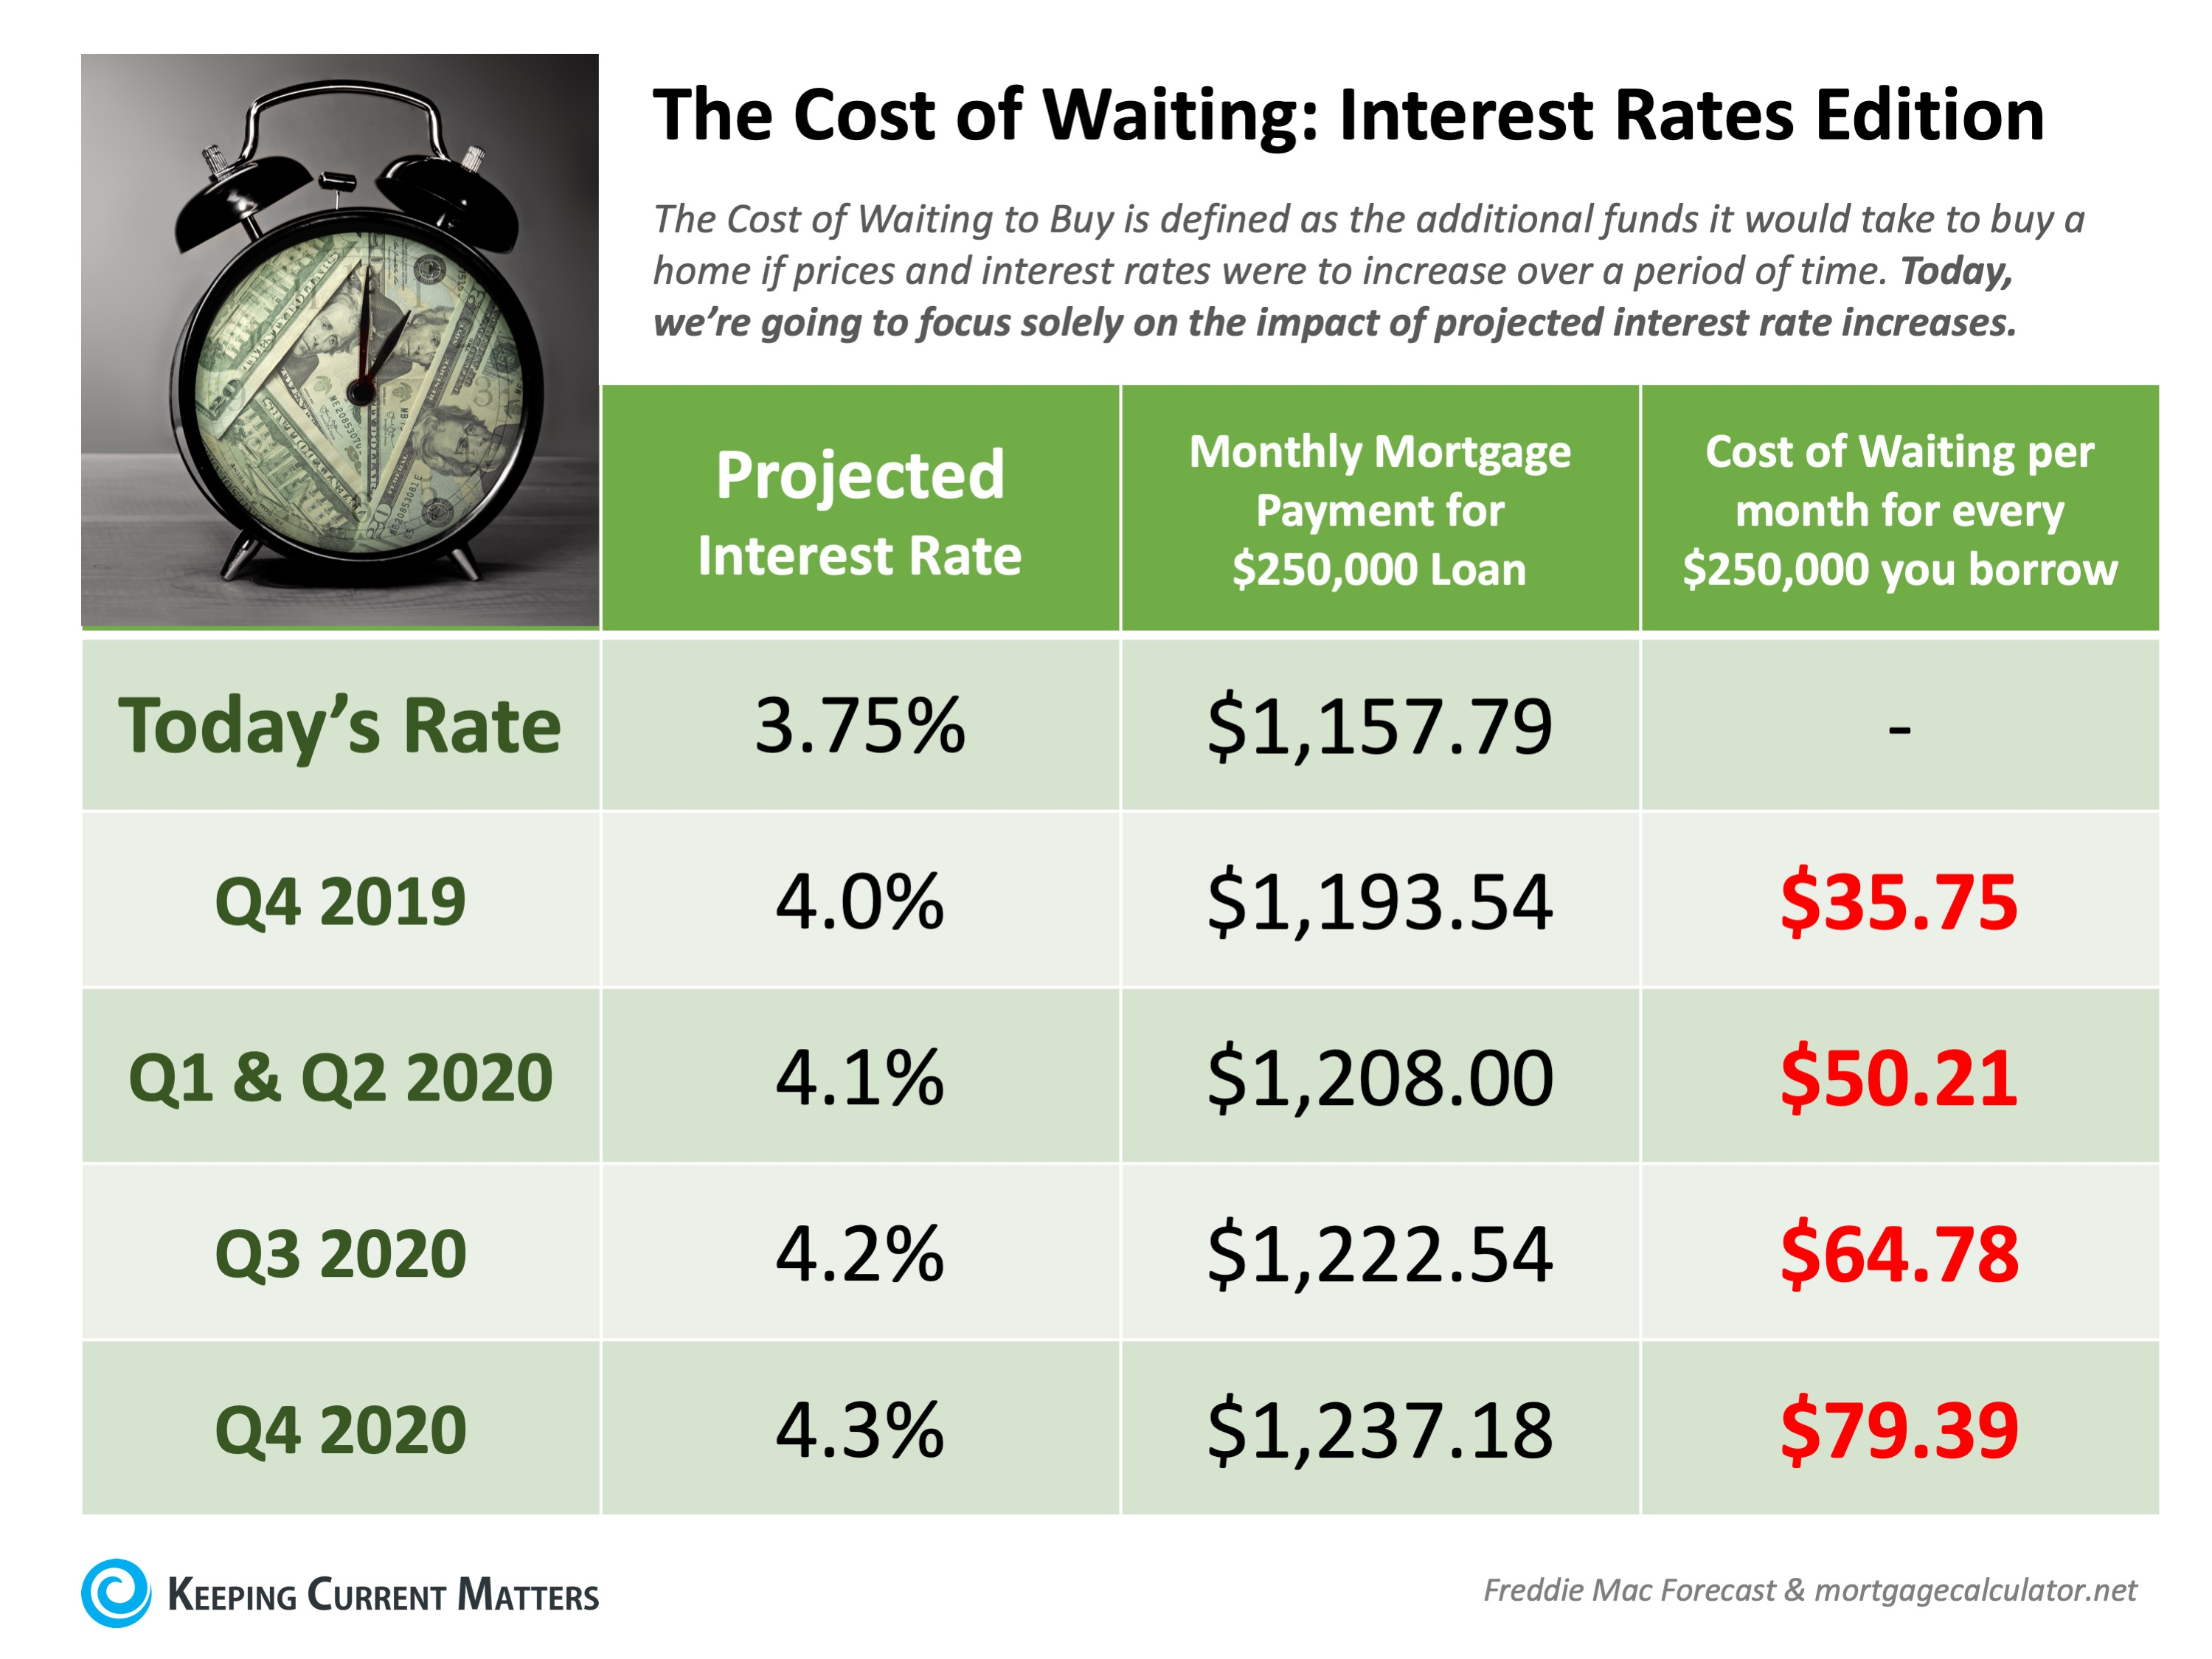 The Cost of Waiting: Interest Rates Edition [INFOGRAPHIC] | Keeping Current Matters